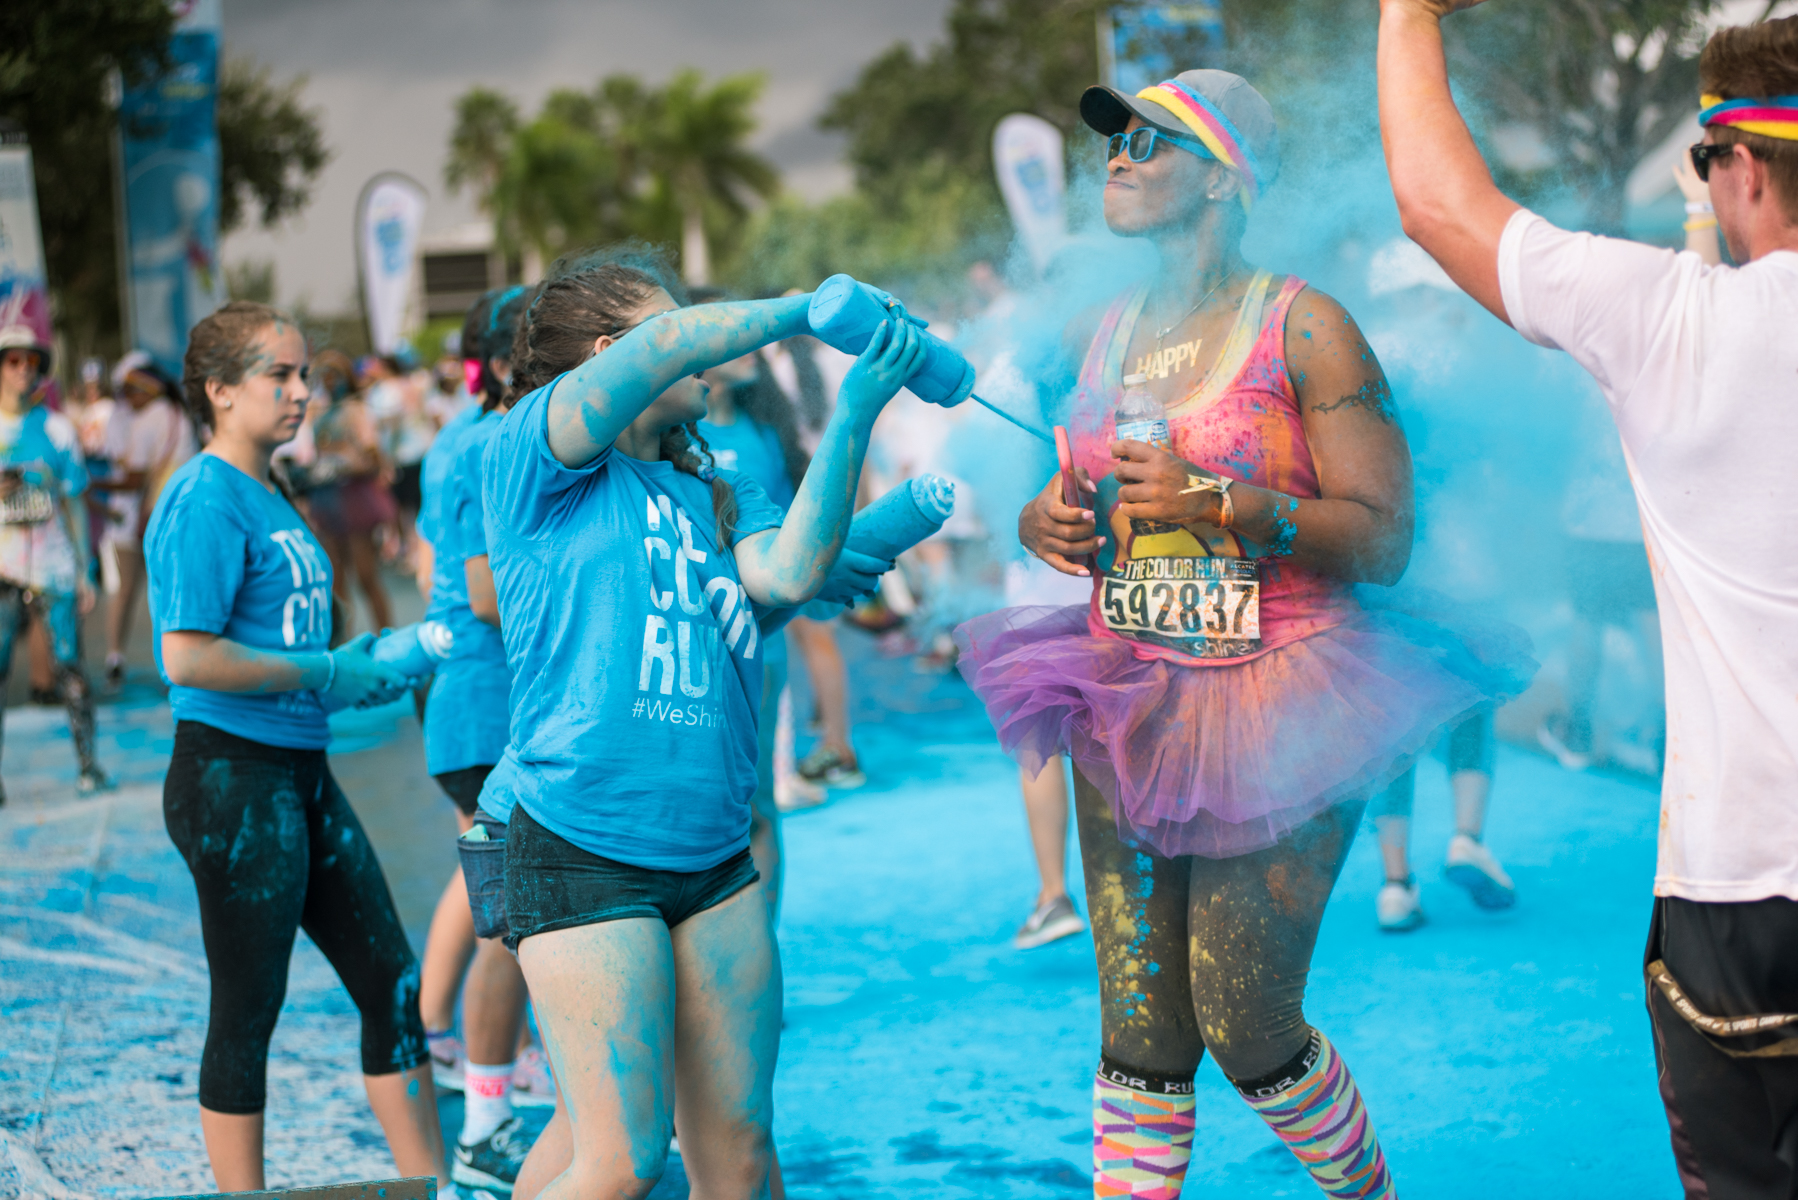 Color_Run-55.jpg